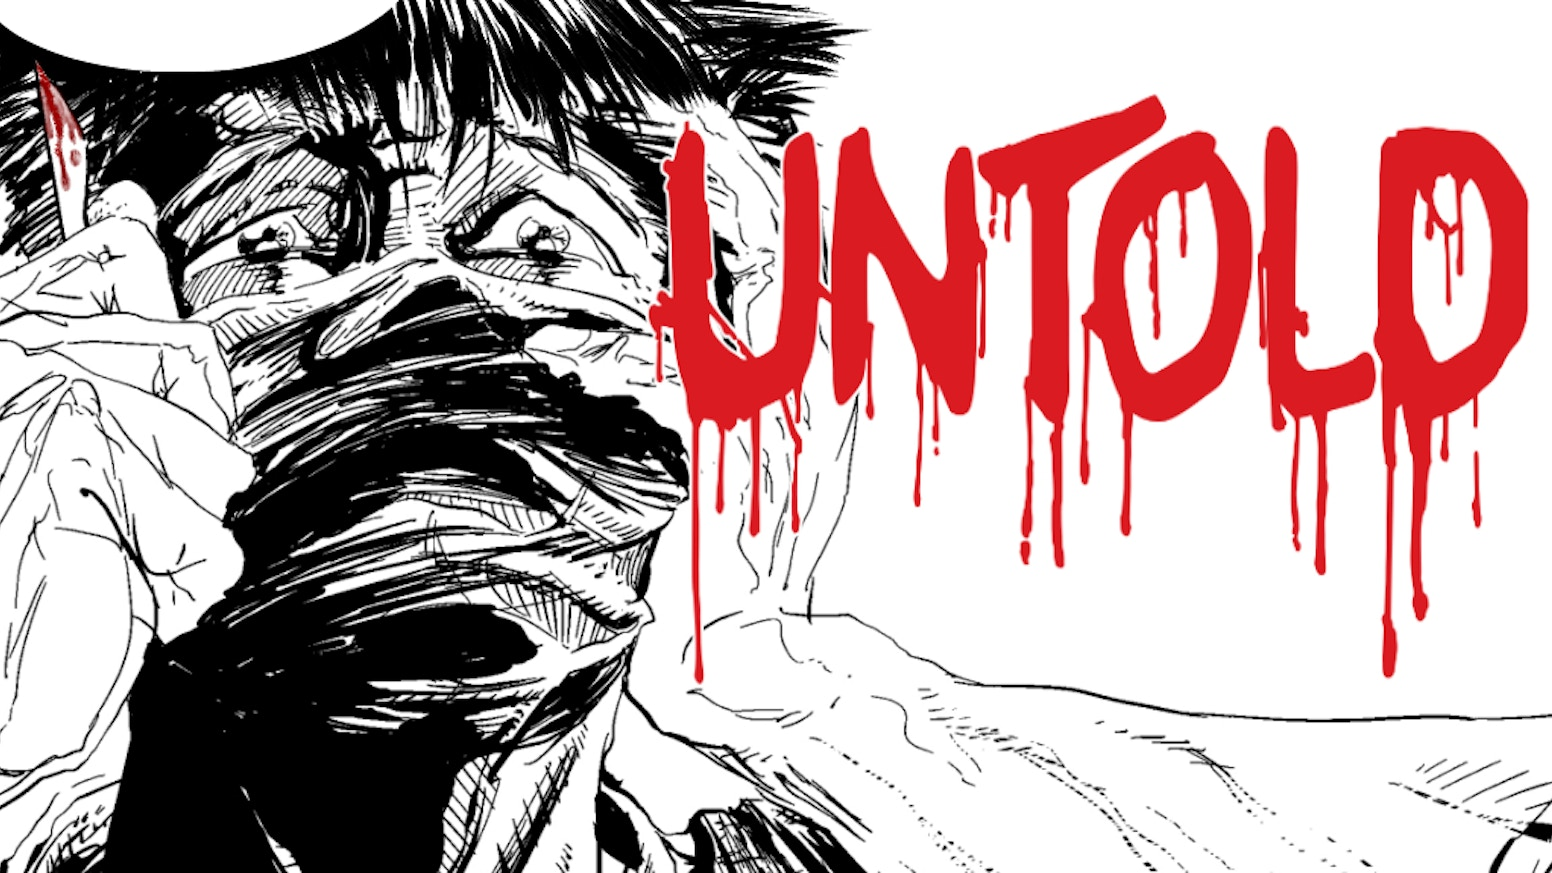 The Untold is a horror comic that combines psychological unrest with striking visual gore to create a truly terrifying experience.